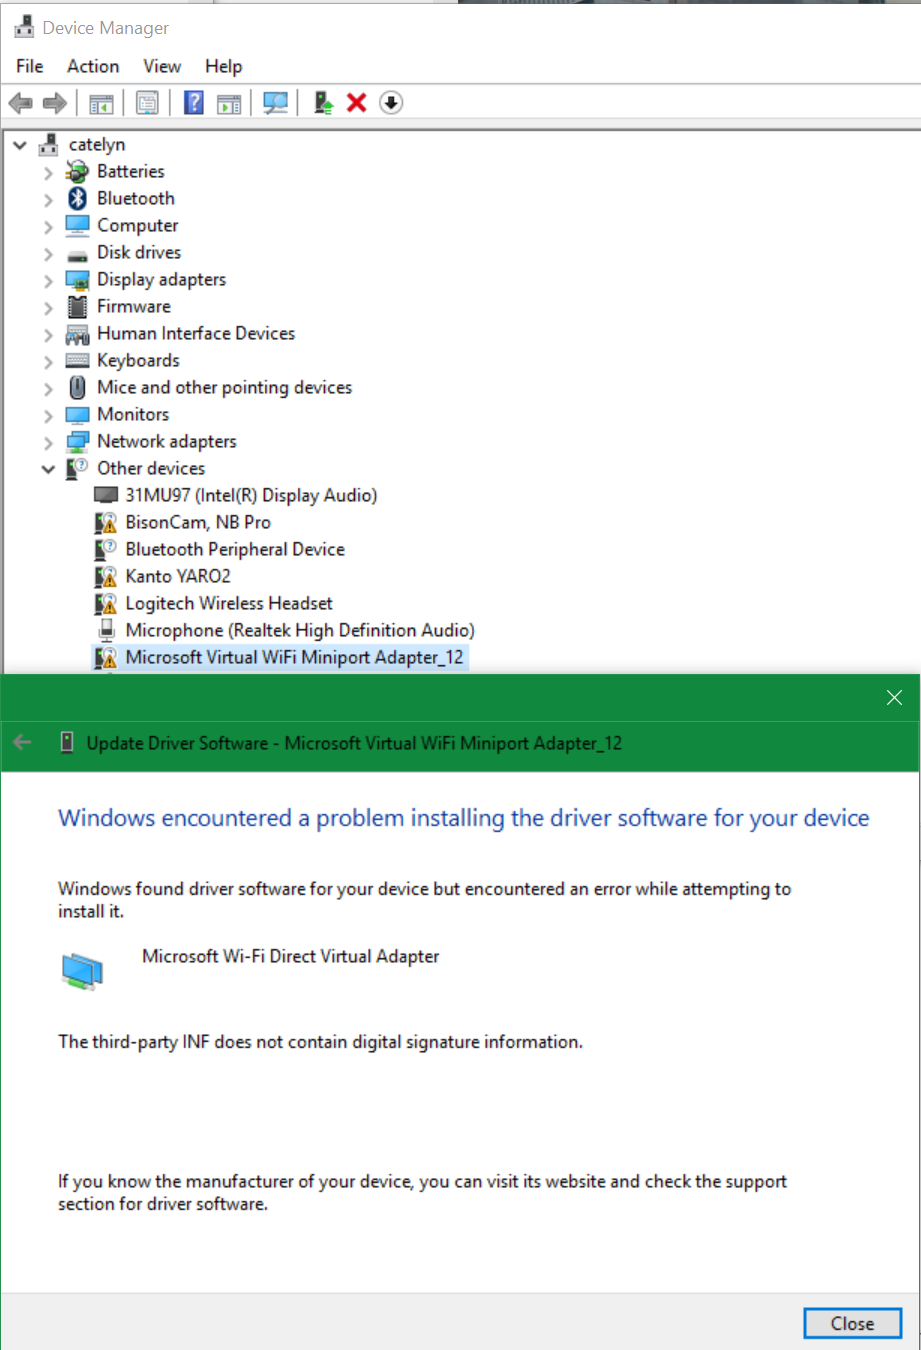 Windows 10 Update KB3176493: All My Drivers Disappeared